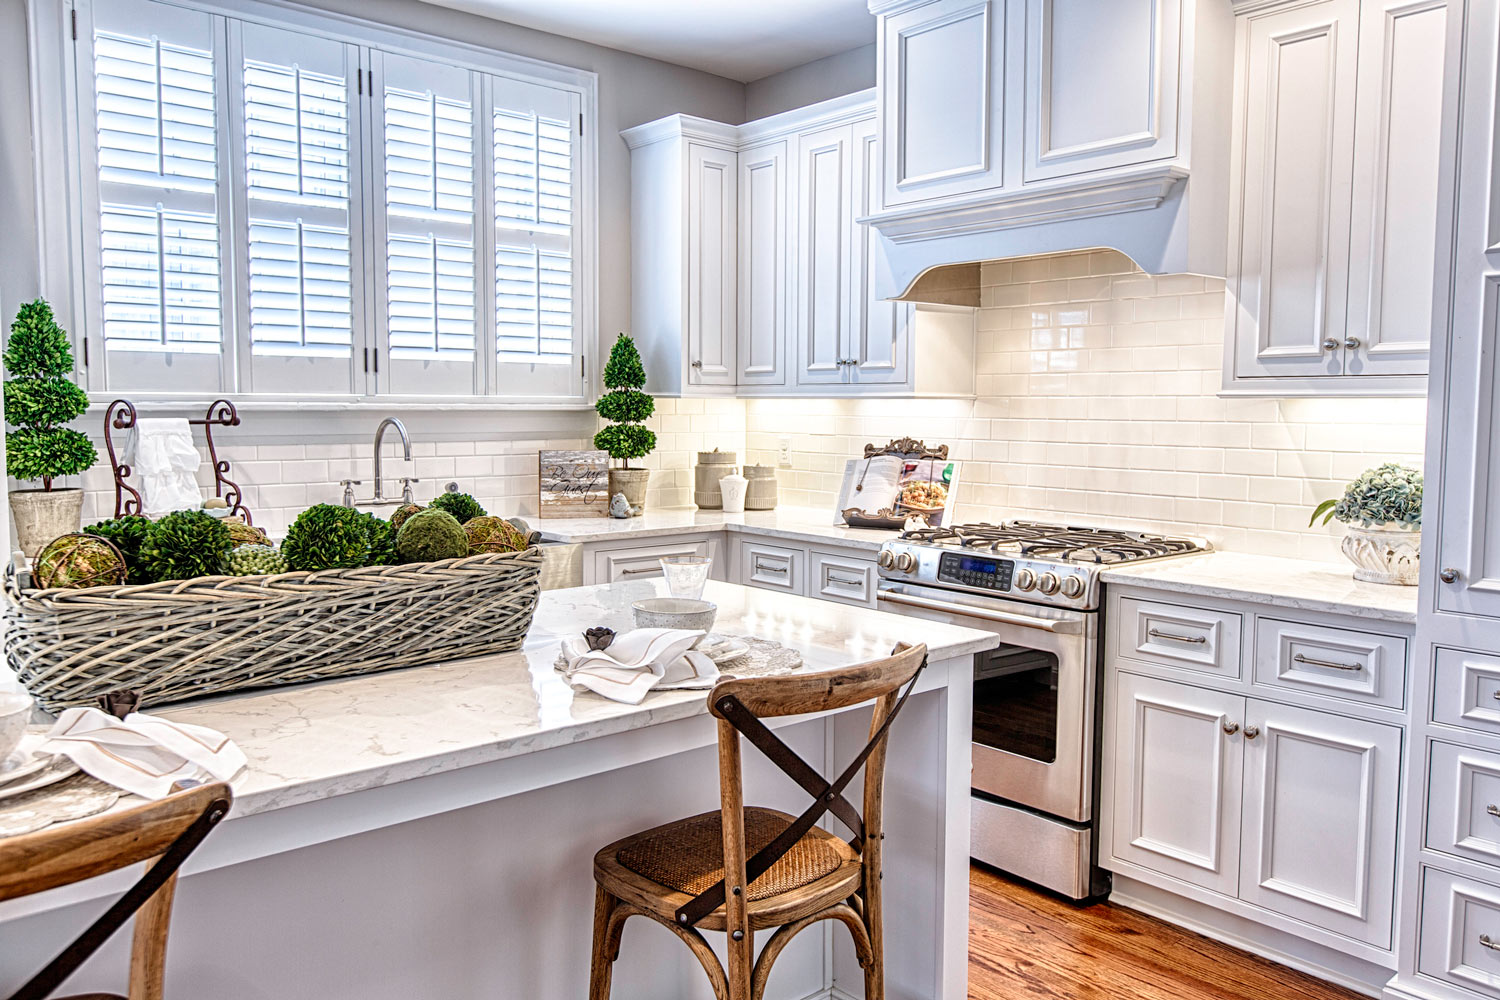 Learn the difference between large manufacturers of kitchen cabinetry versus local shops.